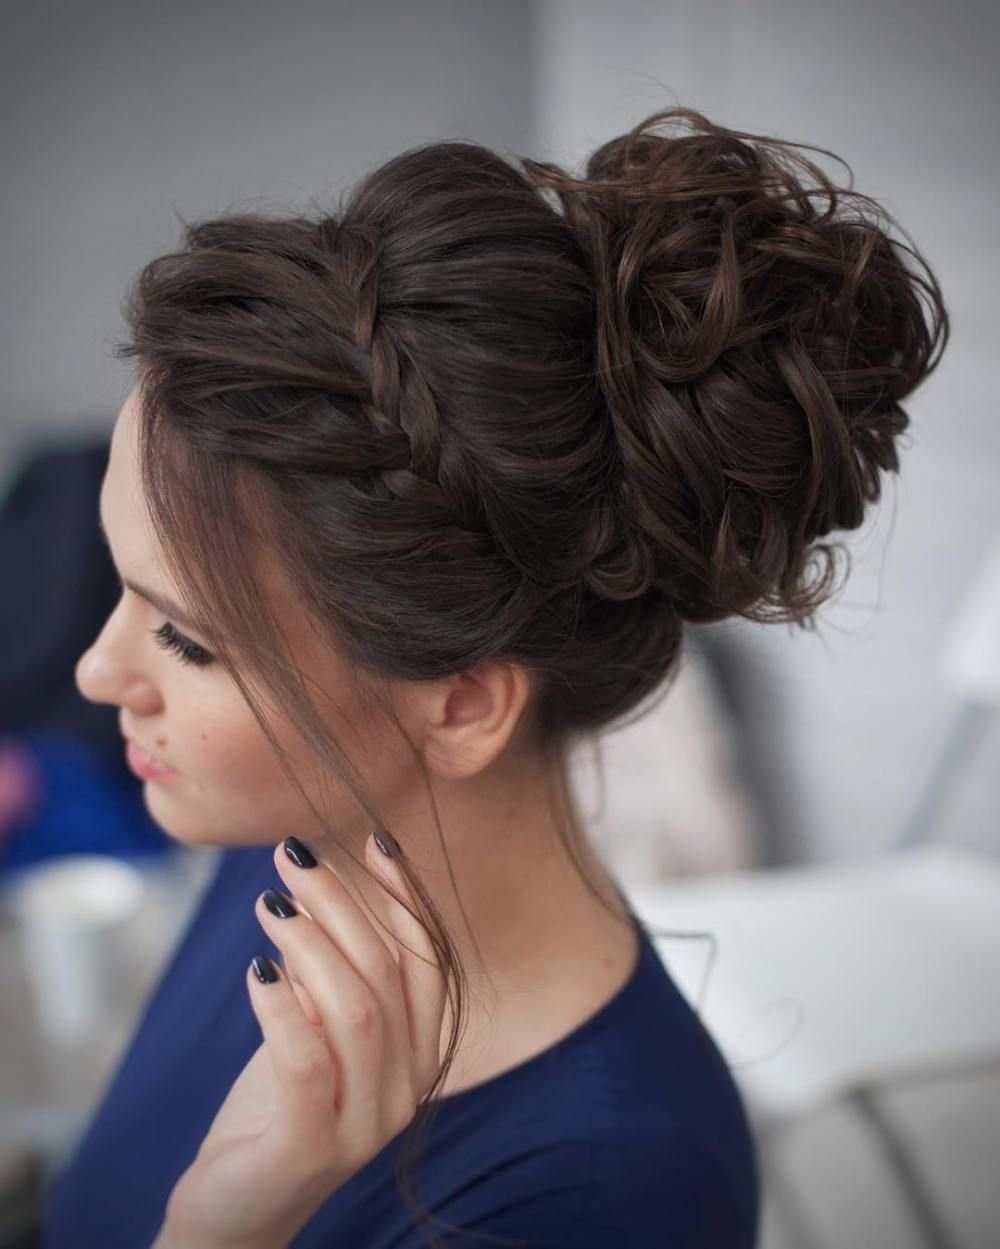 10 Most Recommended Homecoming Hair Ideas For Long Hair 40 most delightful prom updos for long hair in 2018 updo prom and 1 2020